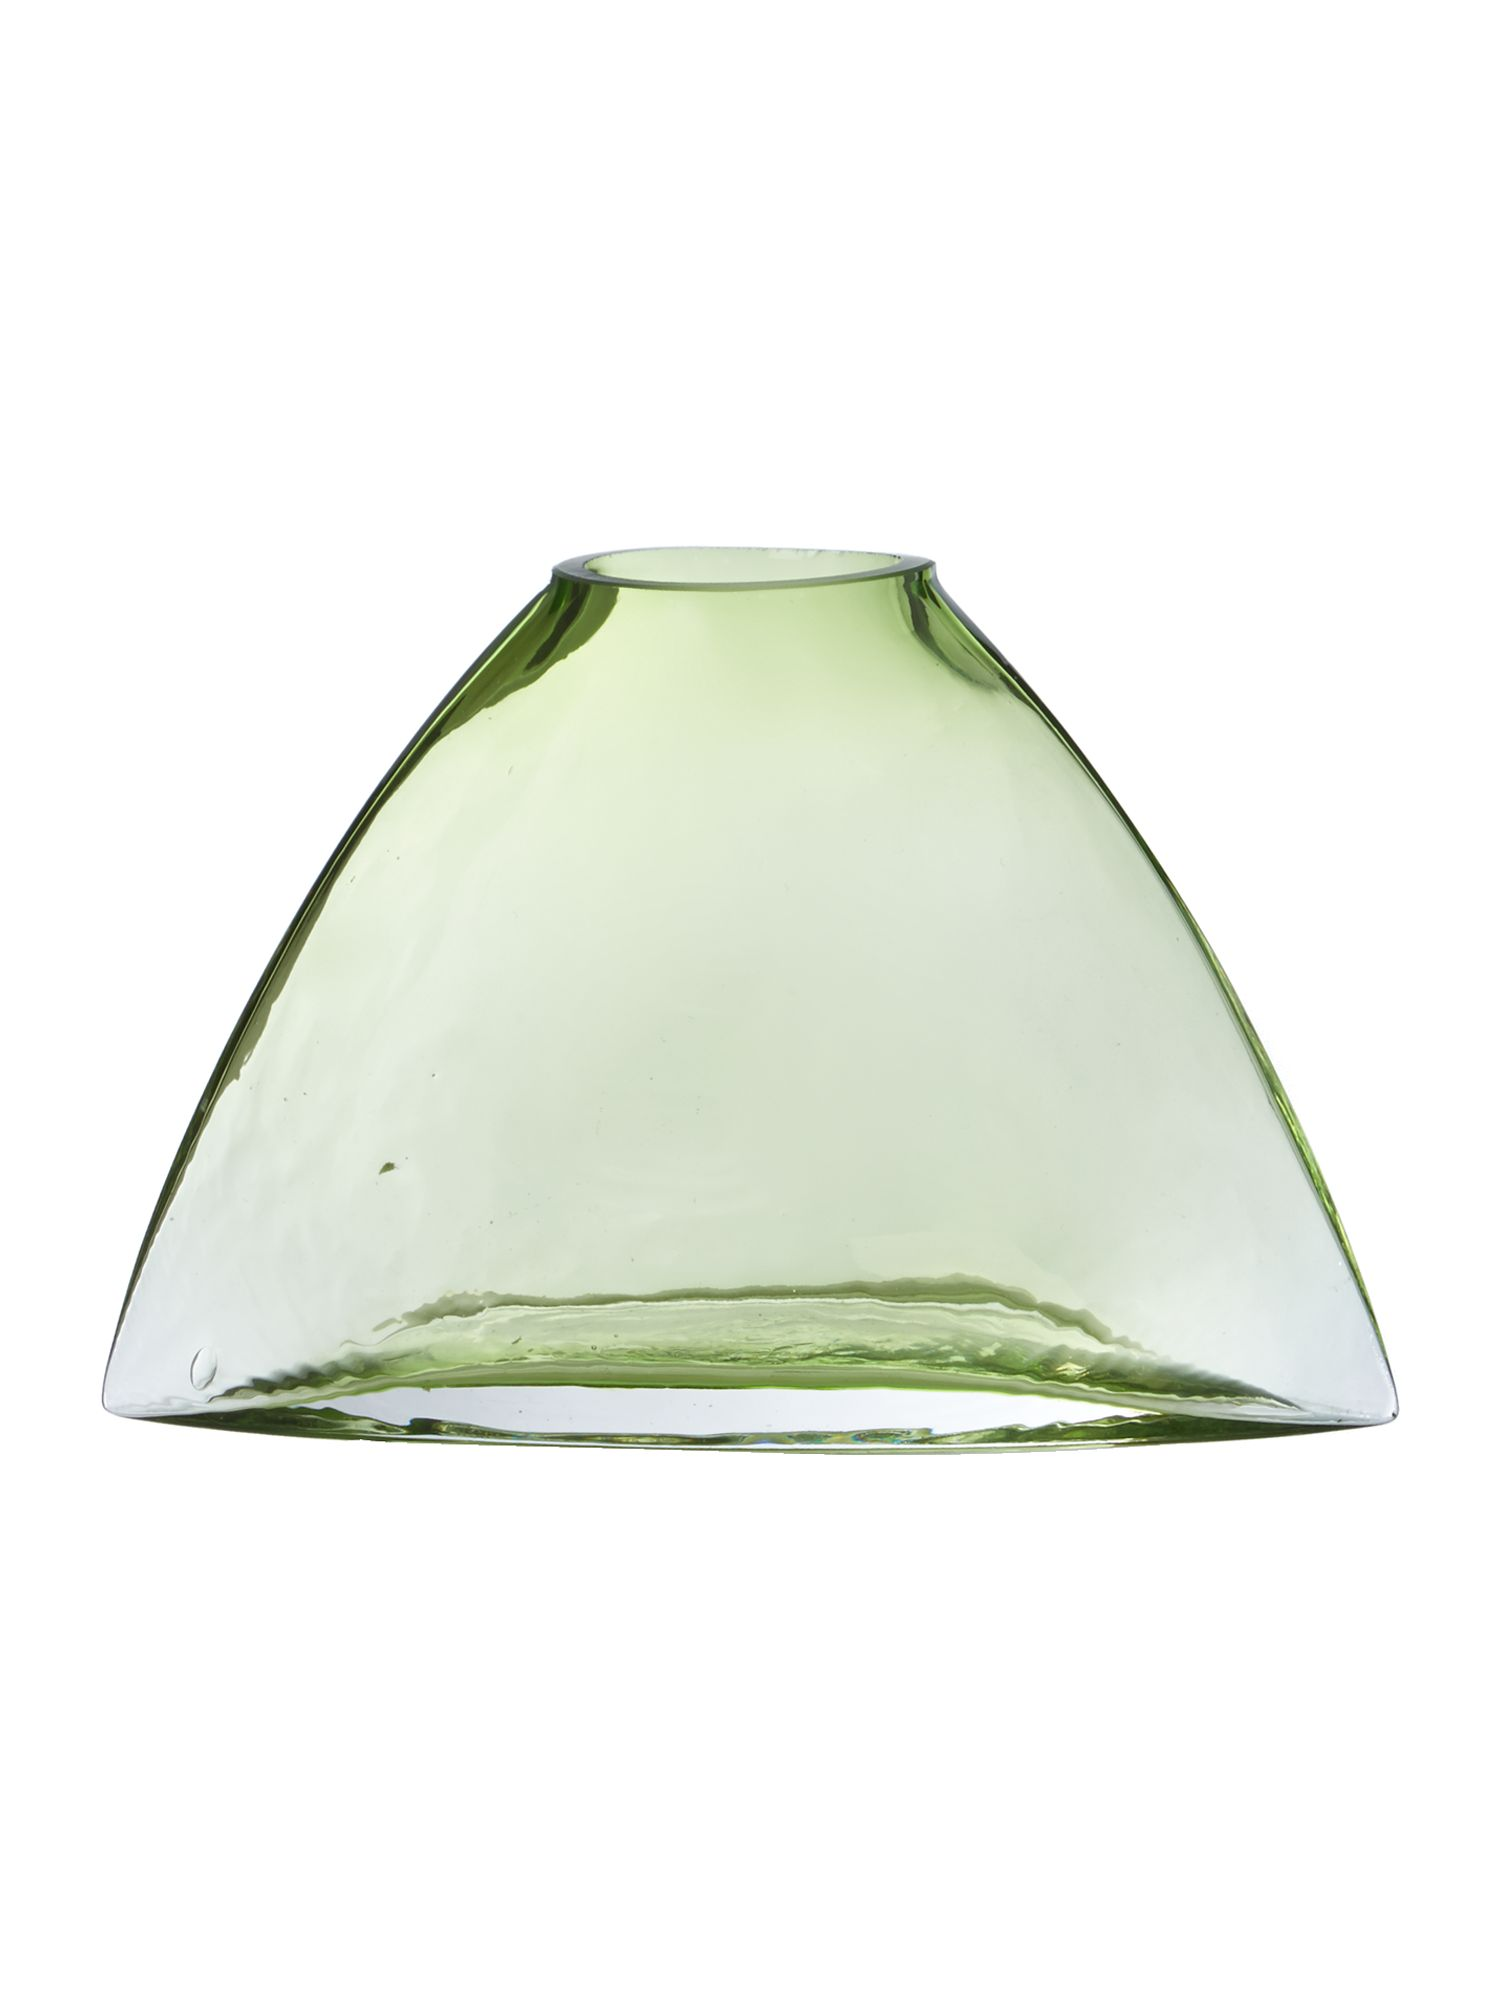 Green glass vase, small